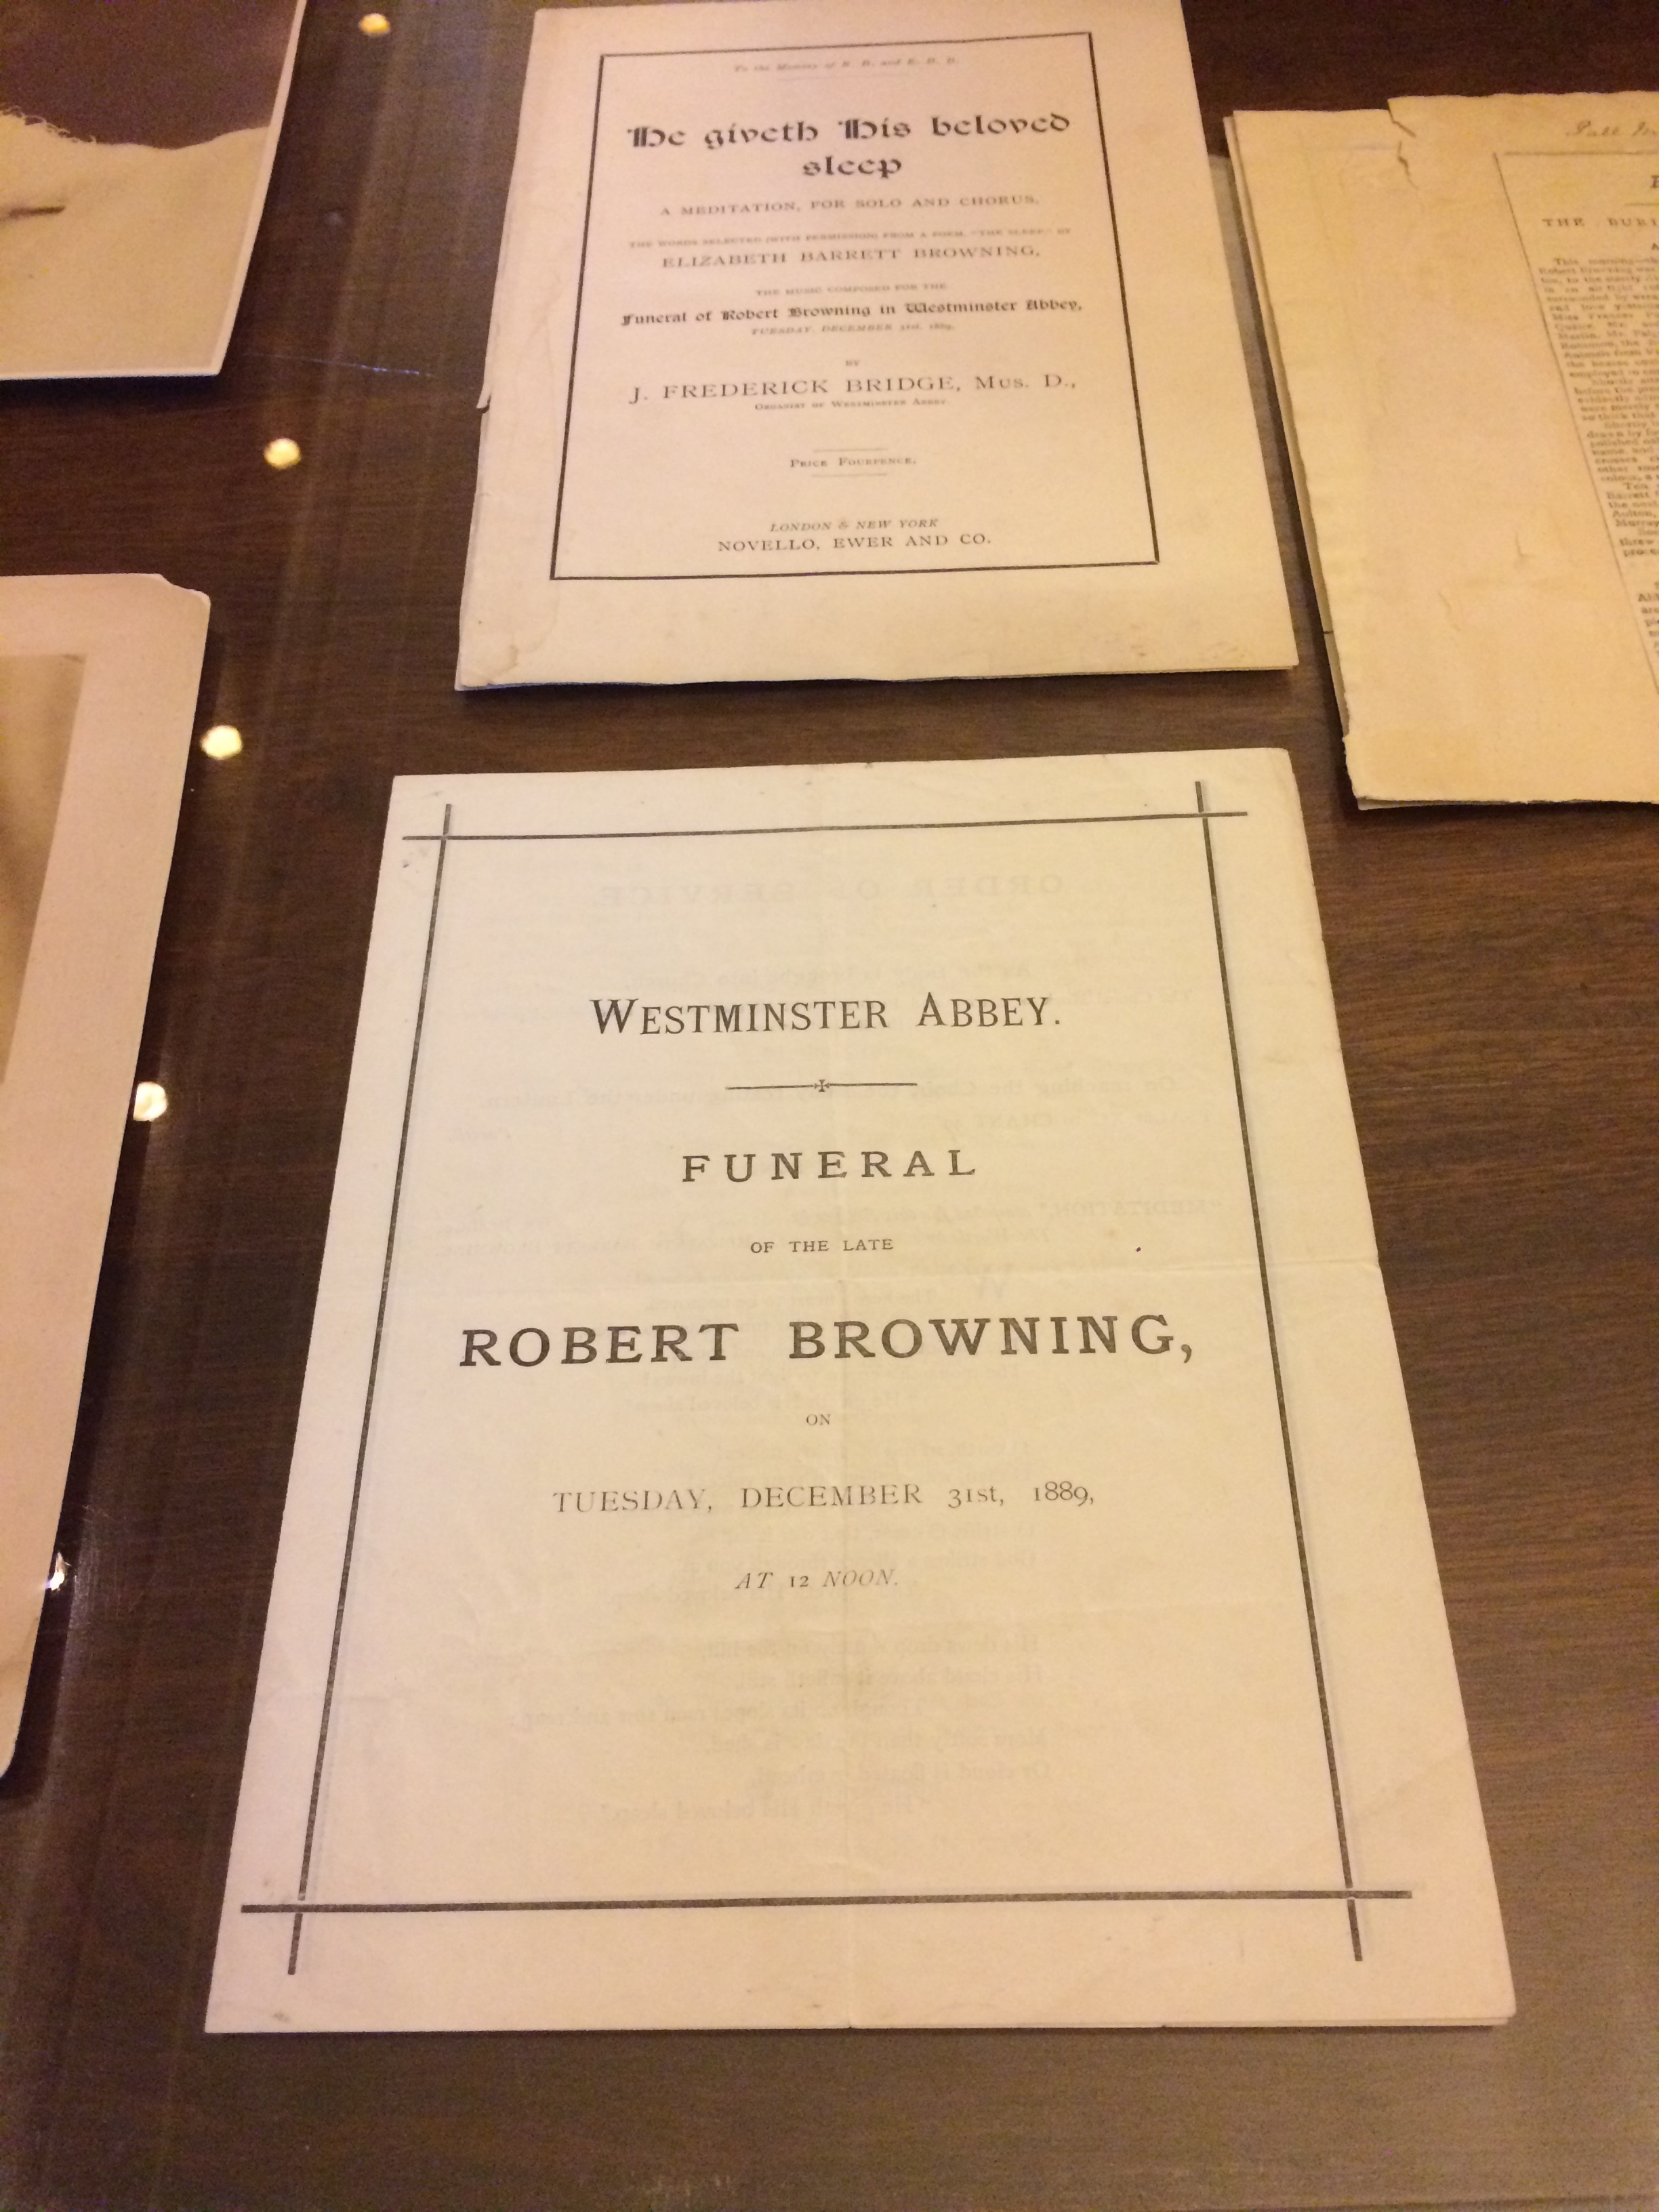 Jennifer Borderud | Armstrong Browning Library & Museum | Page 2